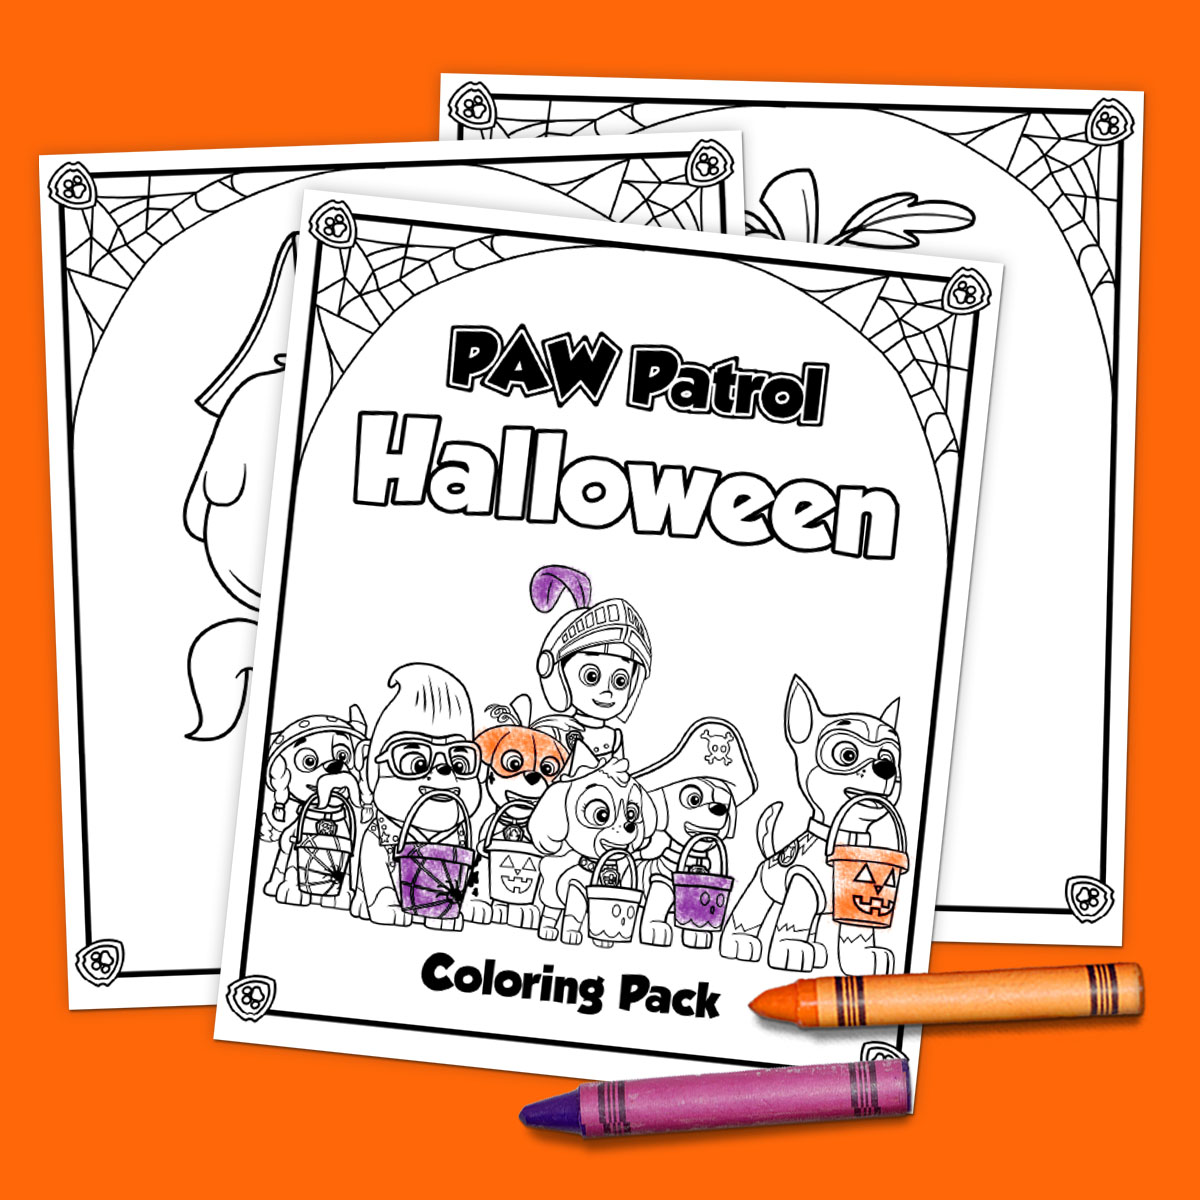 PAW Halloween Coloring Pack